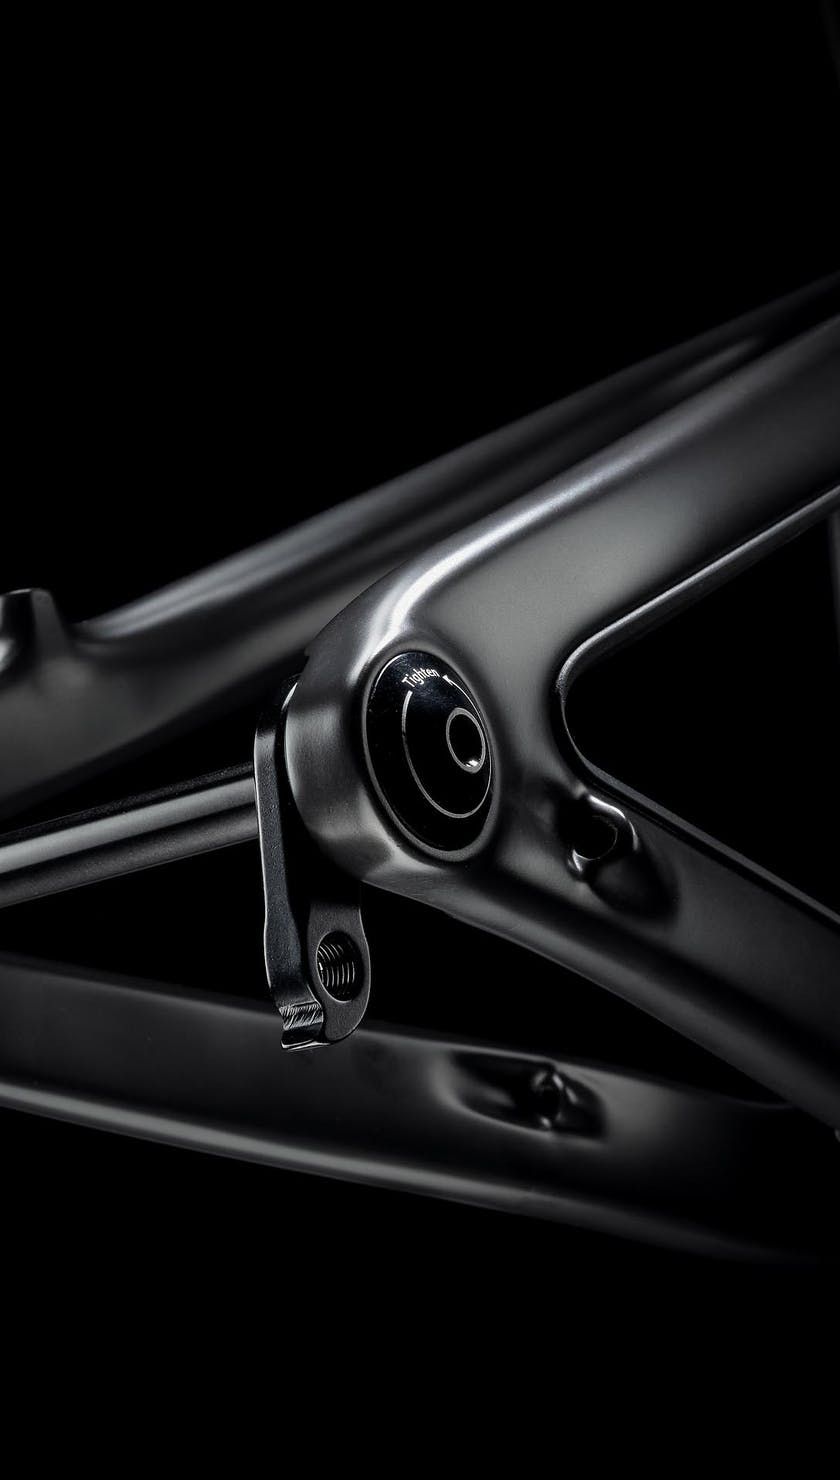 SB130 Raw Carbon Frame Detail